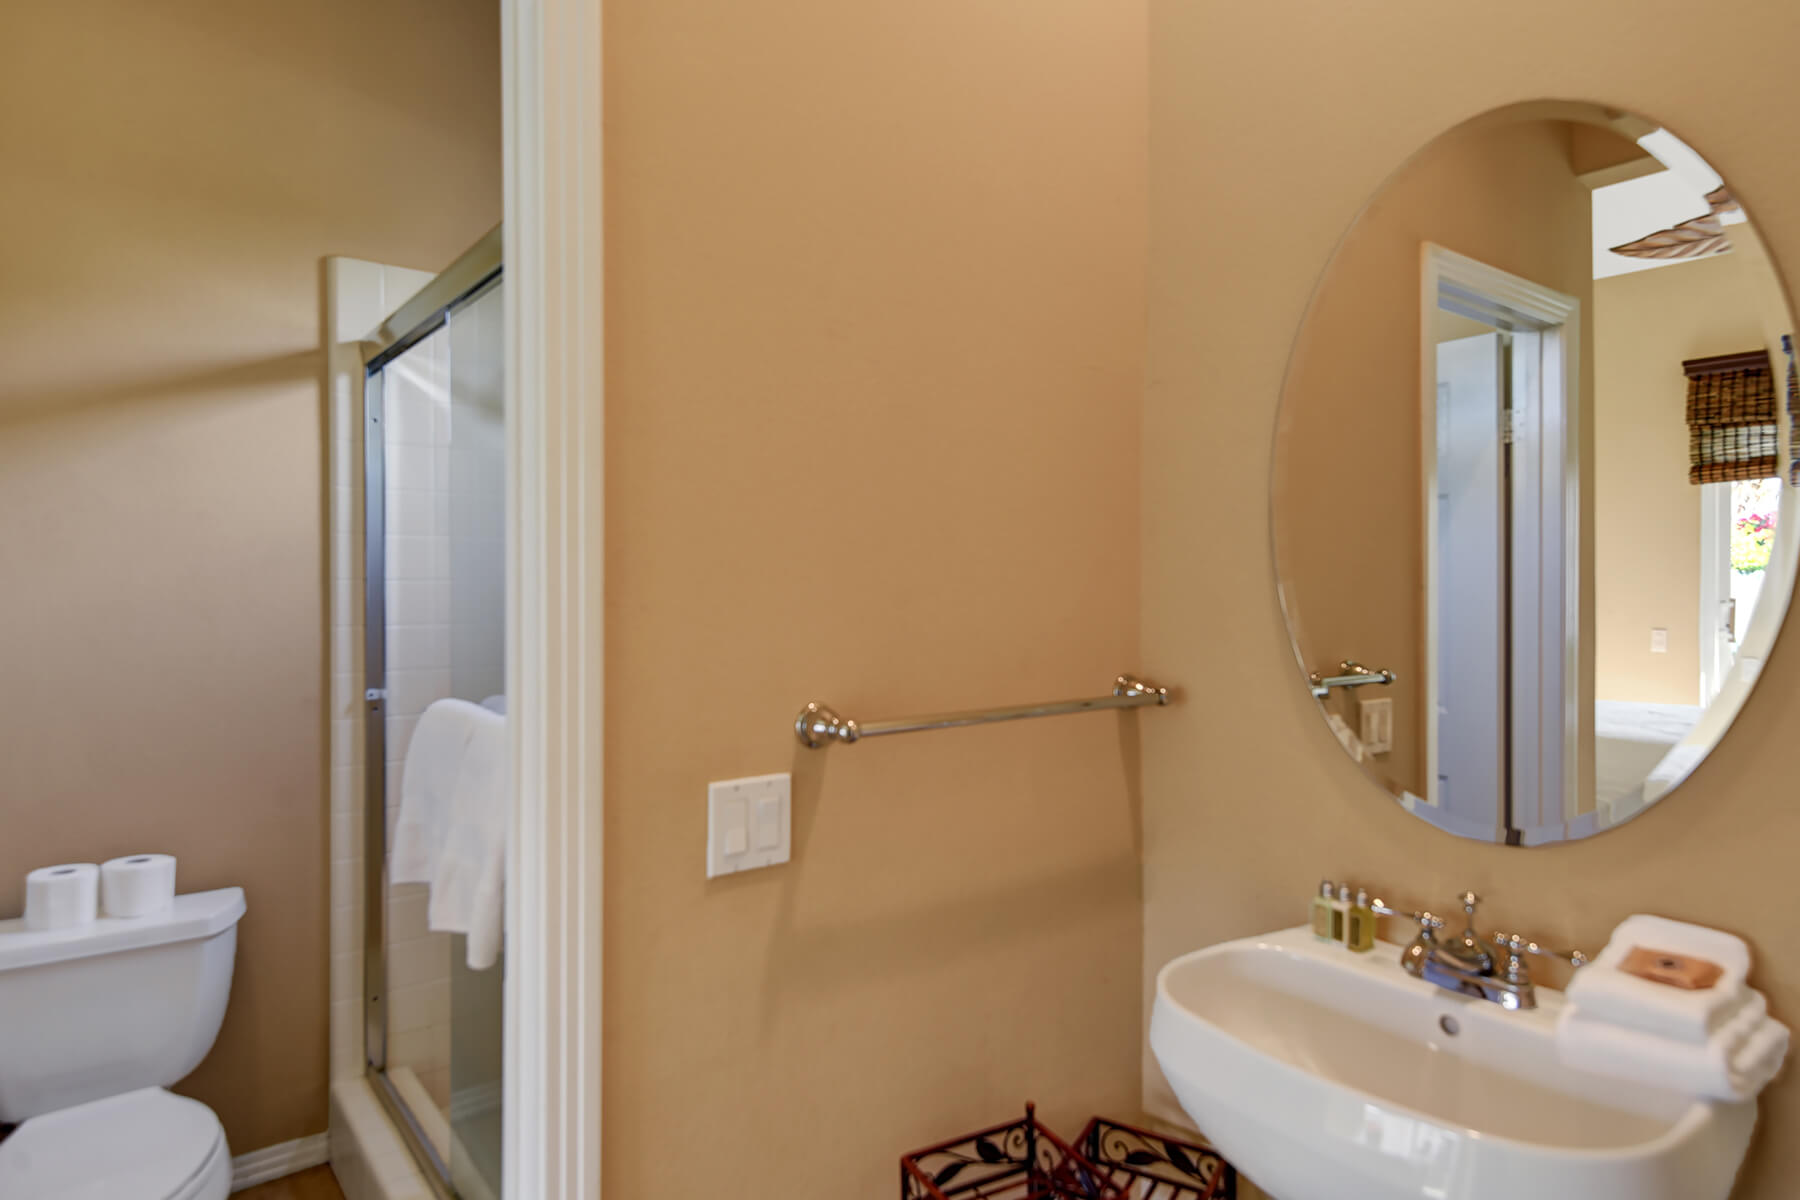 B9784FB1-155D-0010-07C56066900B6CAD-CASITA BATHROOM MLS.jpg